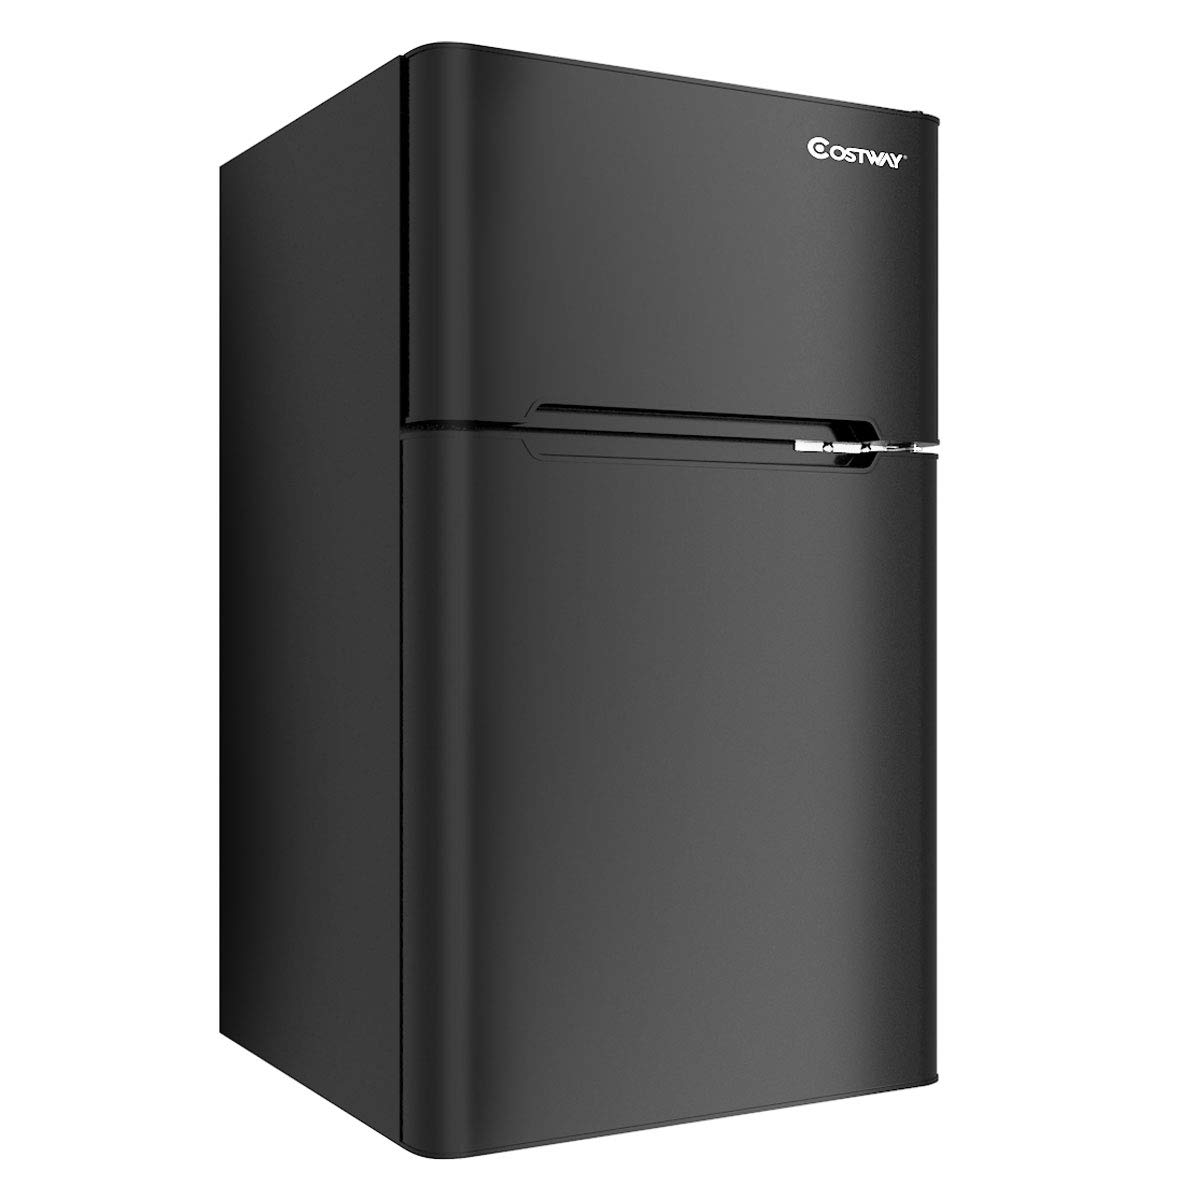 Costway Compact Refrigerator 3.2 cu ft. Unit Small Freezer Cooler Fridge (Black)